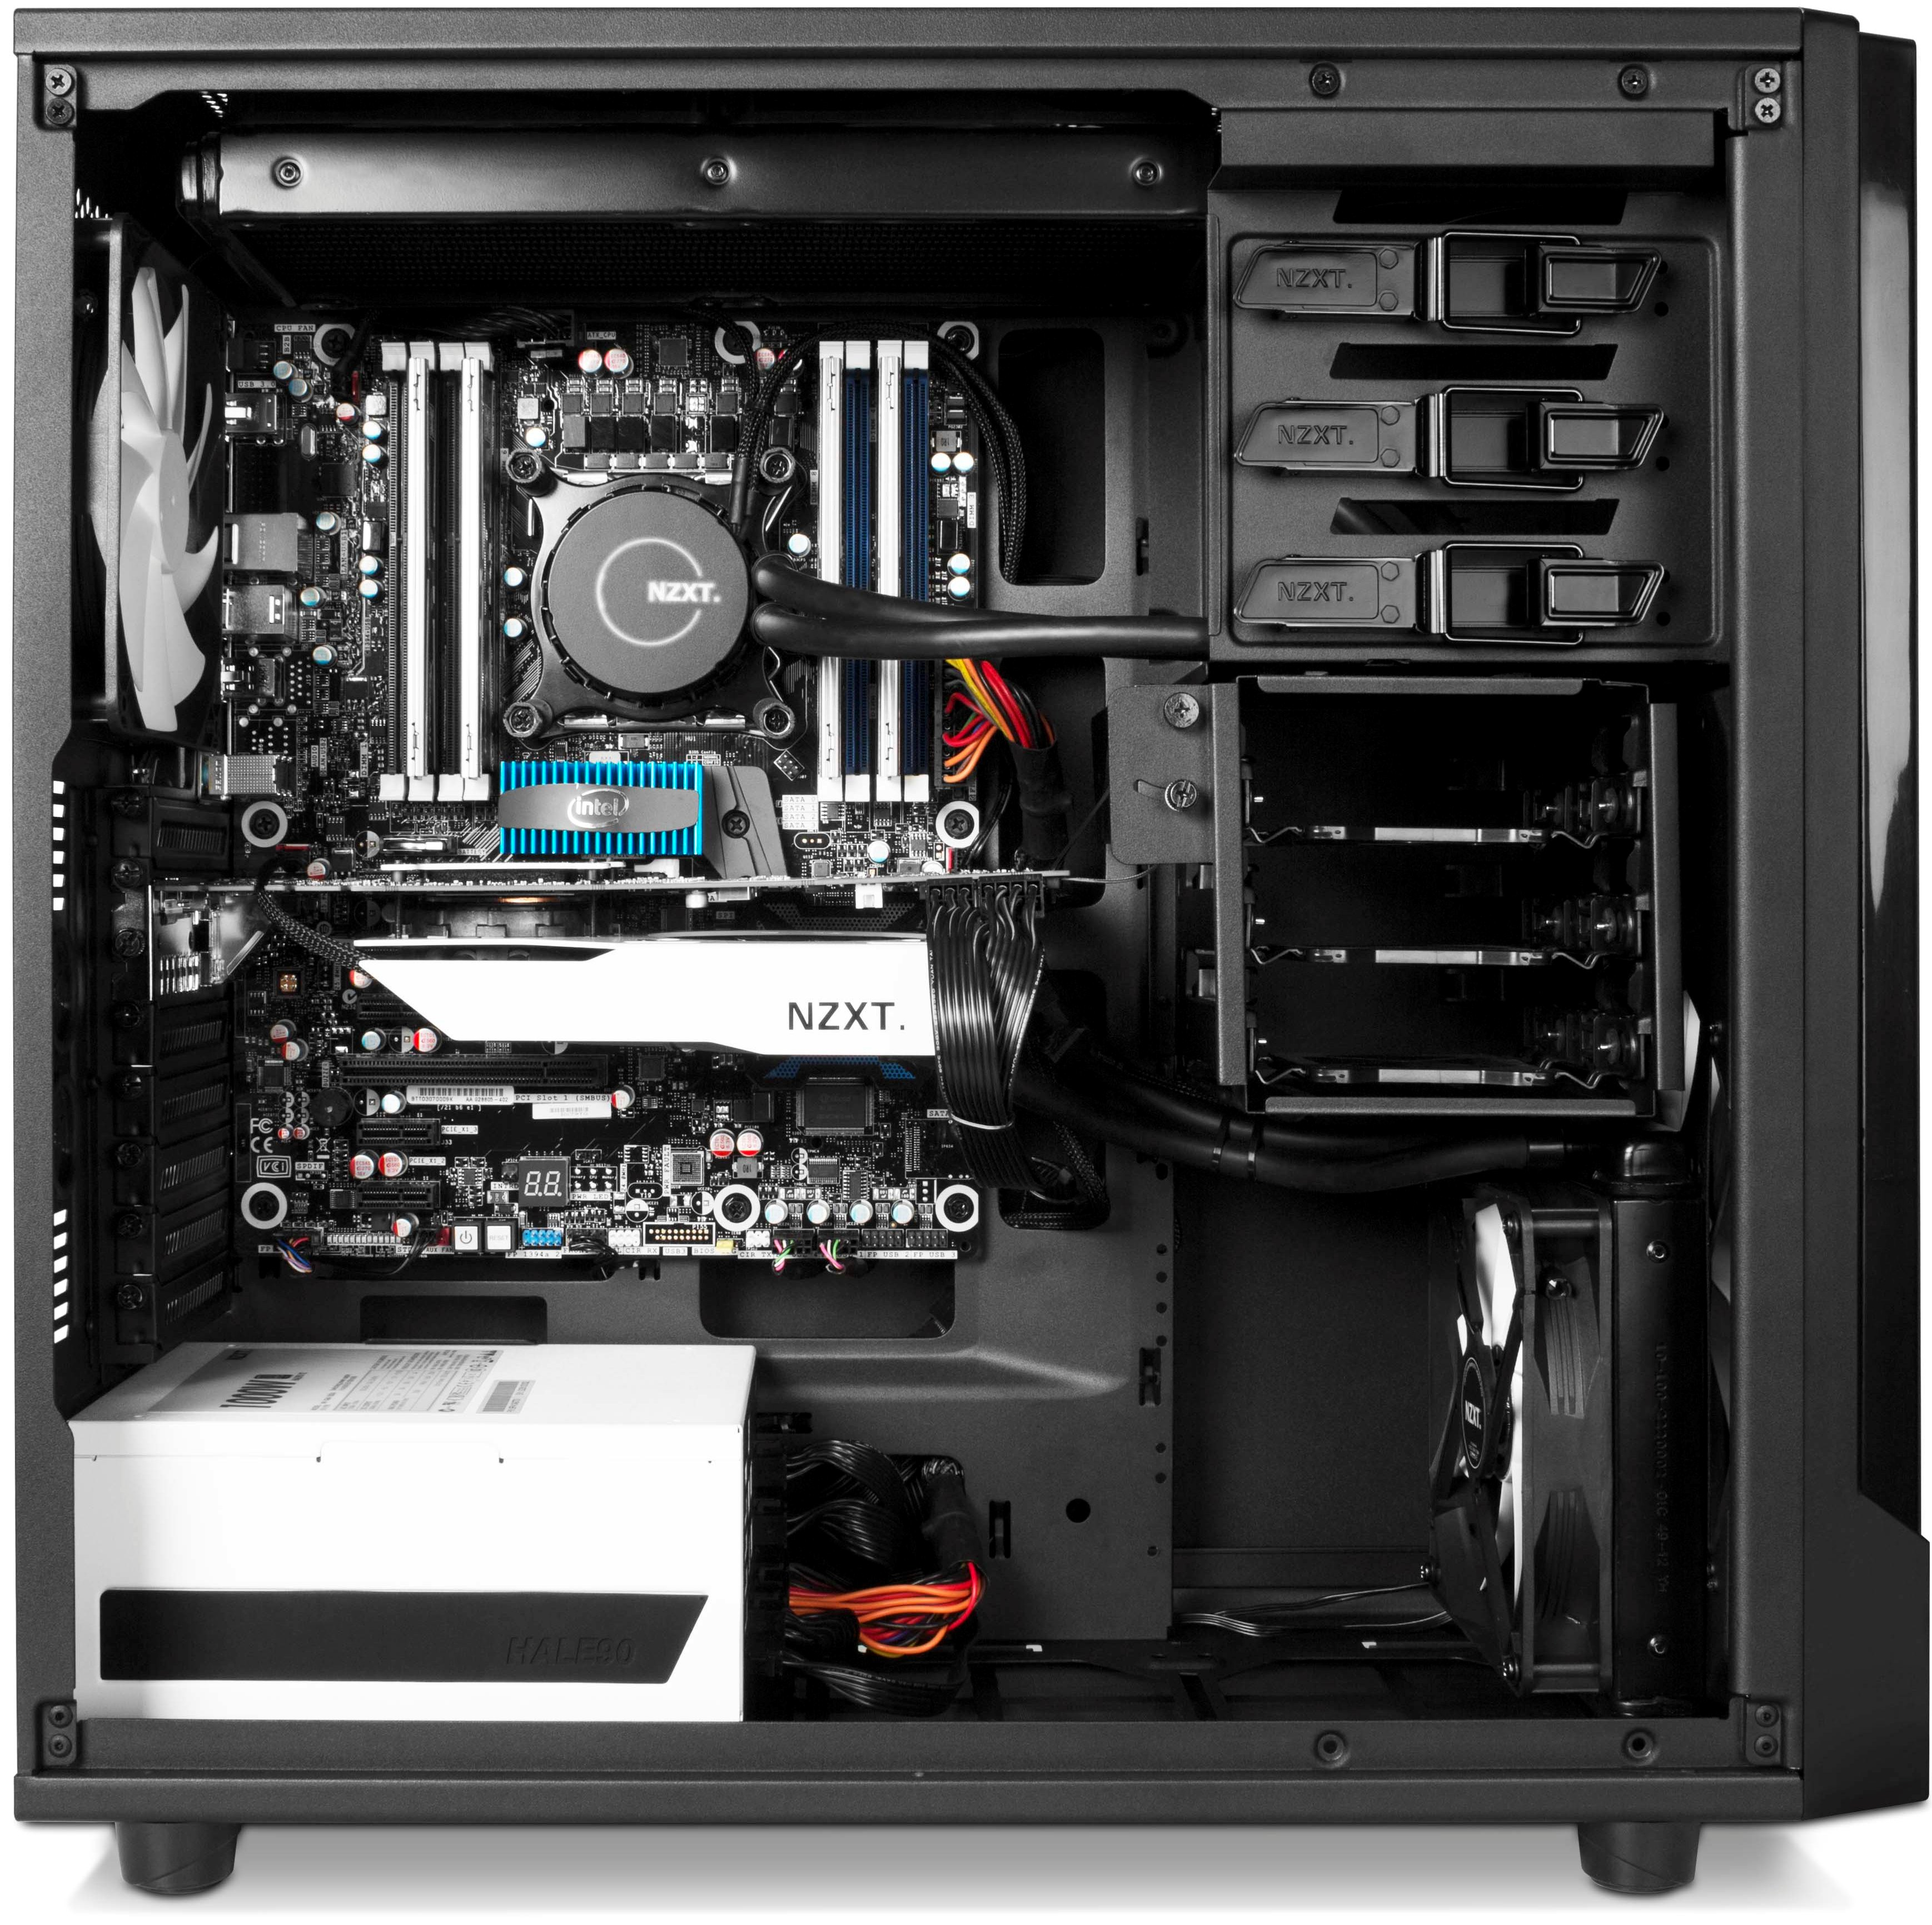 NZXT Launches Source 530, Full-Tower Chassis for Gaming Enthusiasts